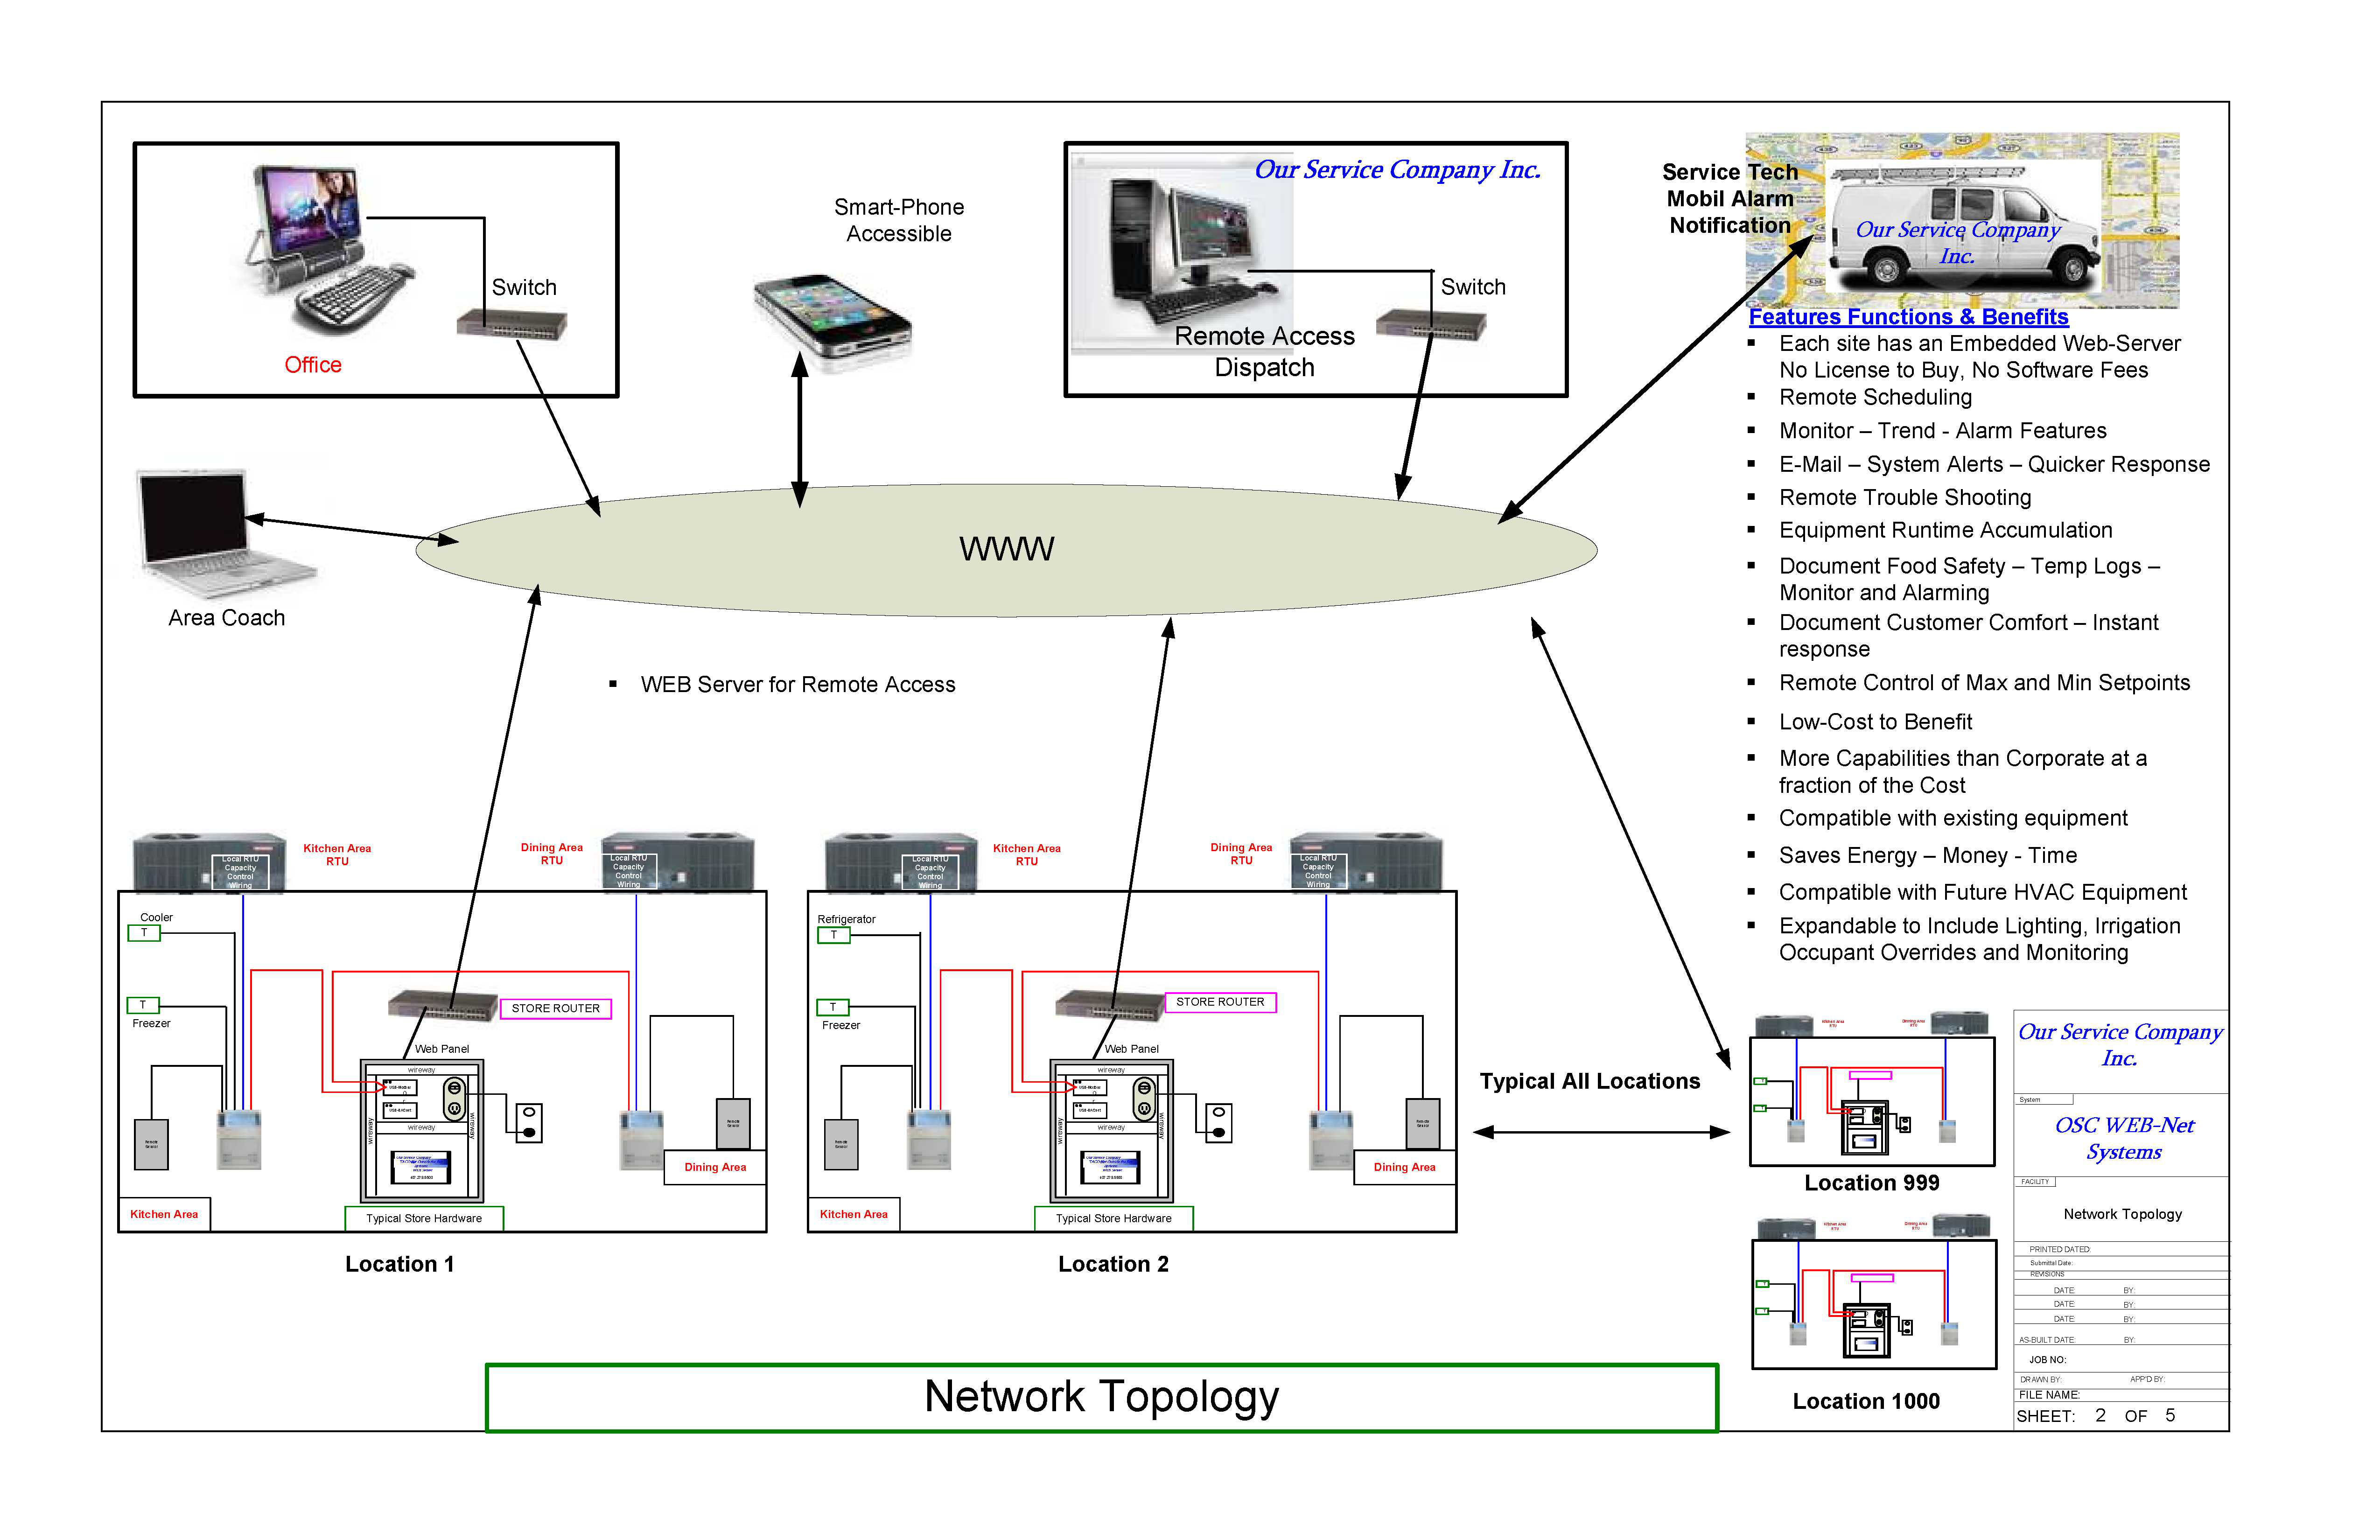 Osc Web Net Bas System Our Service Company Hvac Drawing